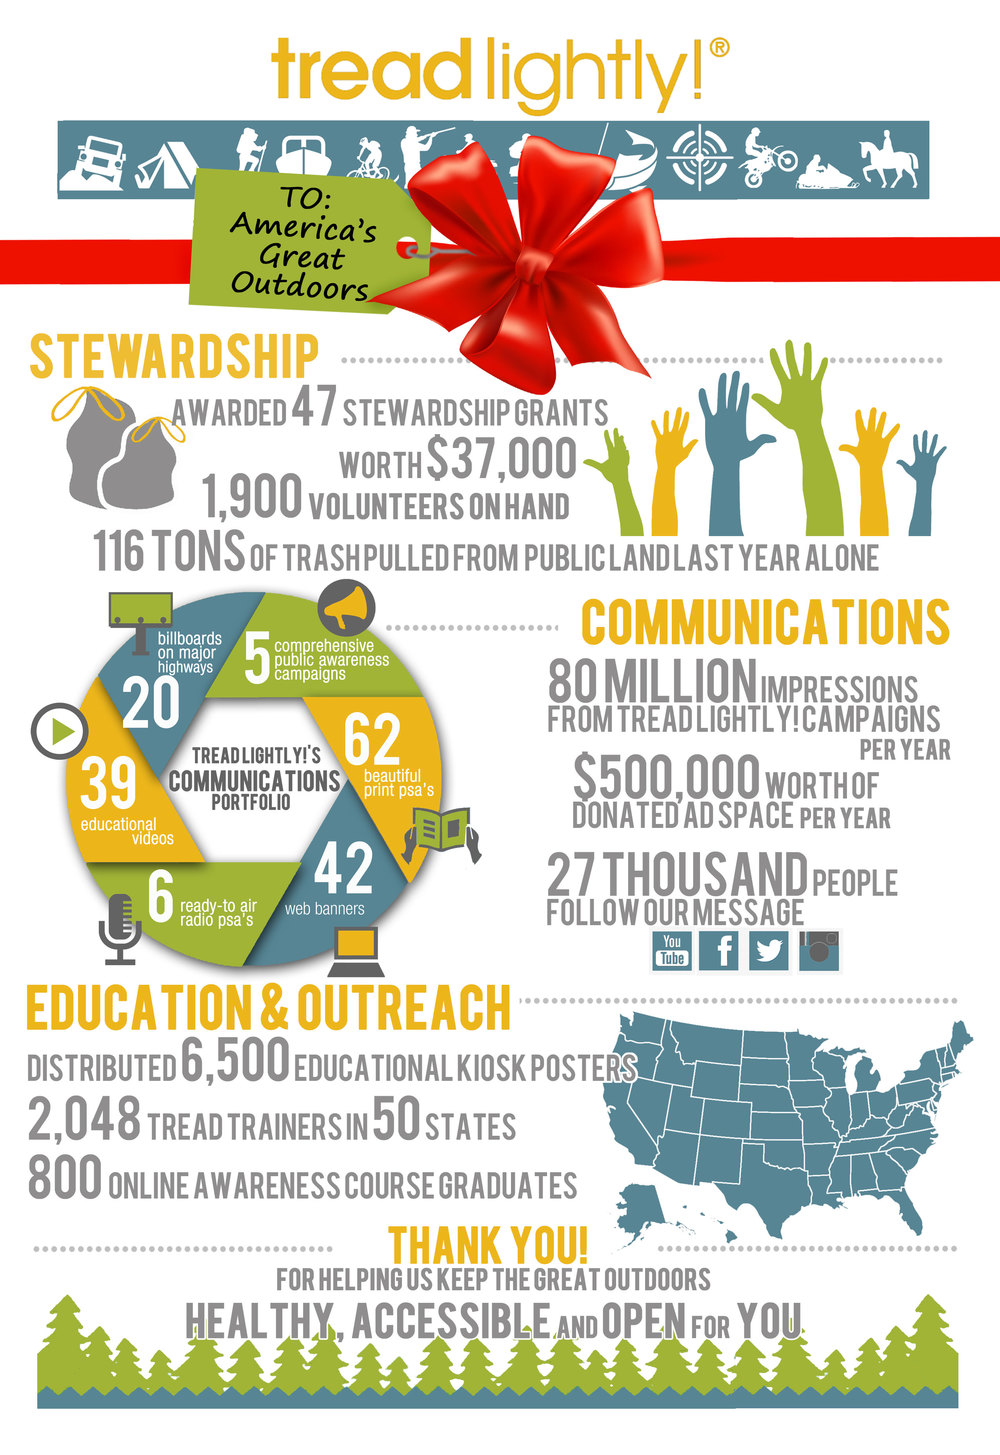 ChristmasTreadLightlyInfographic.jpg